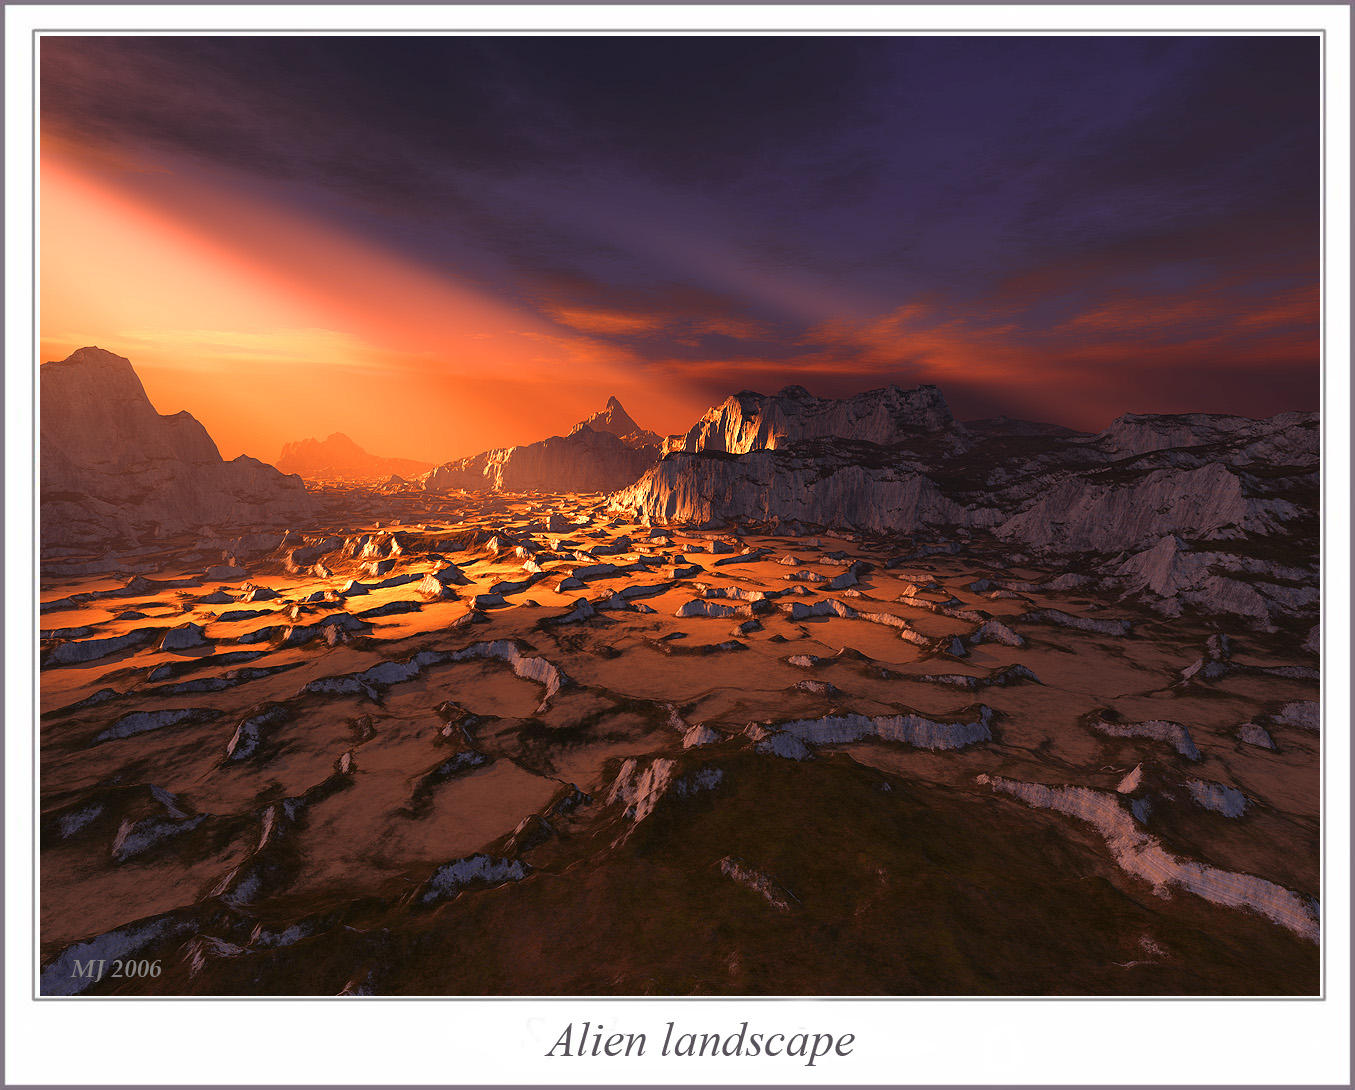 Alien landscape by sandpiper6 on DeviantArt